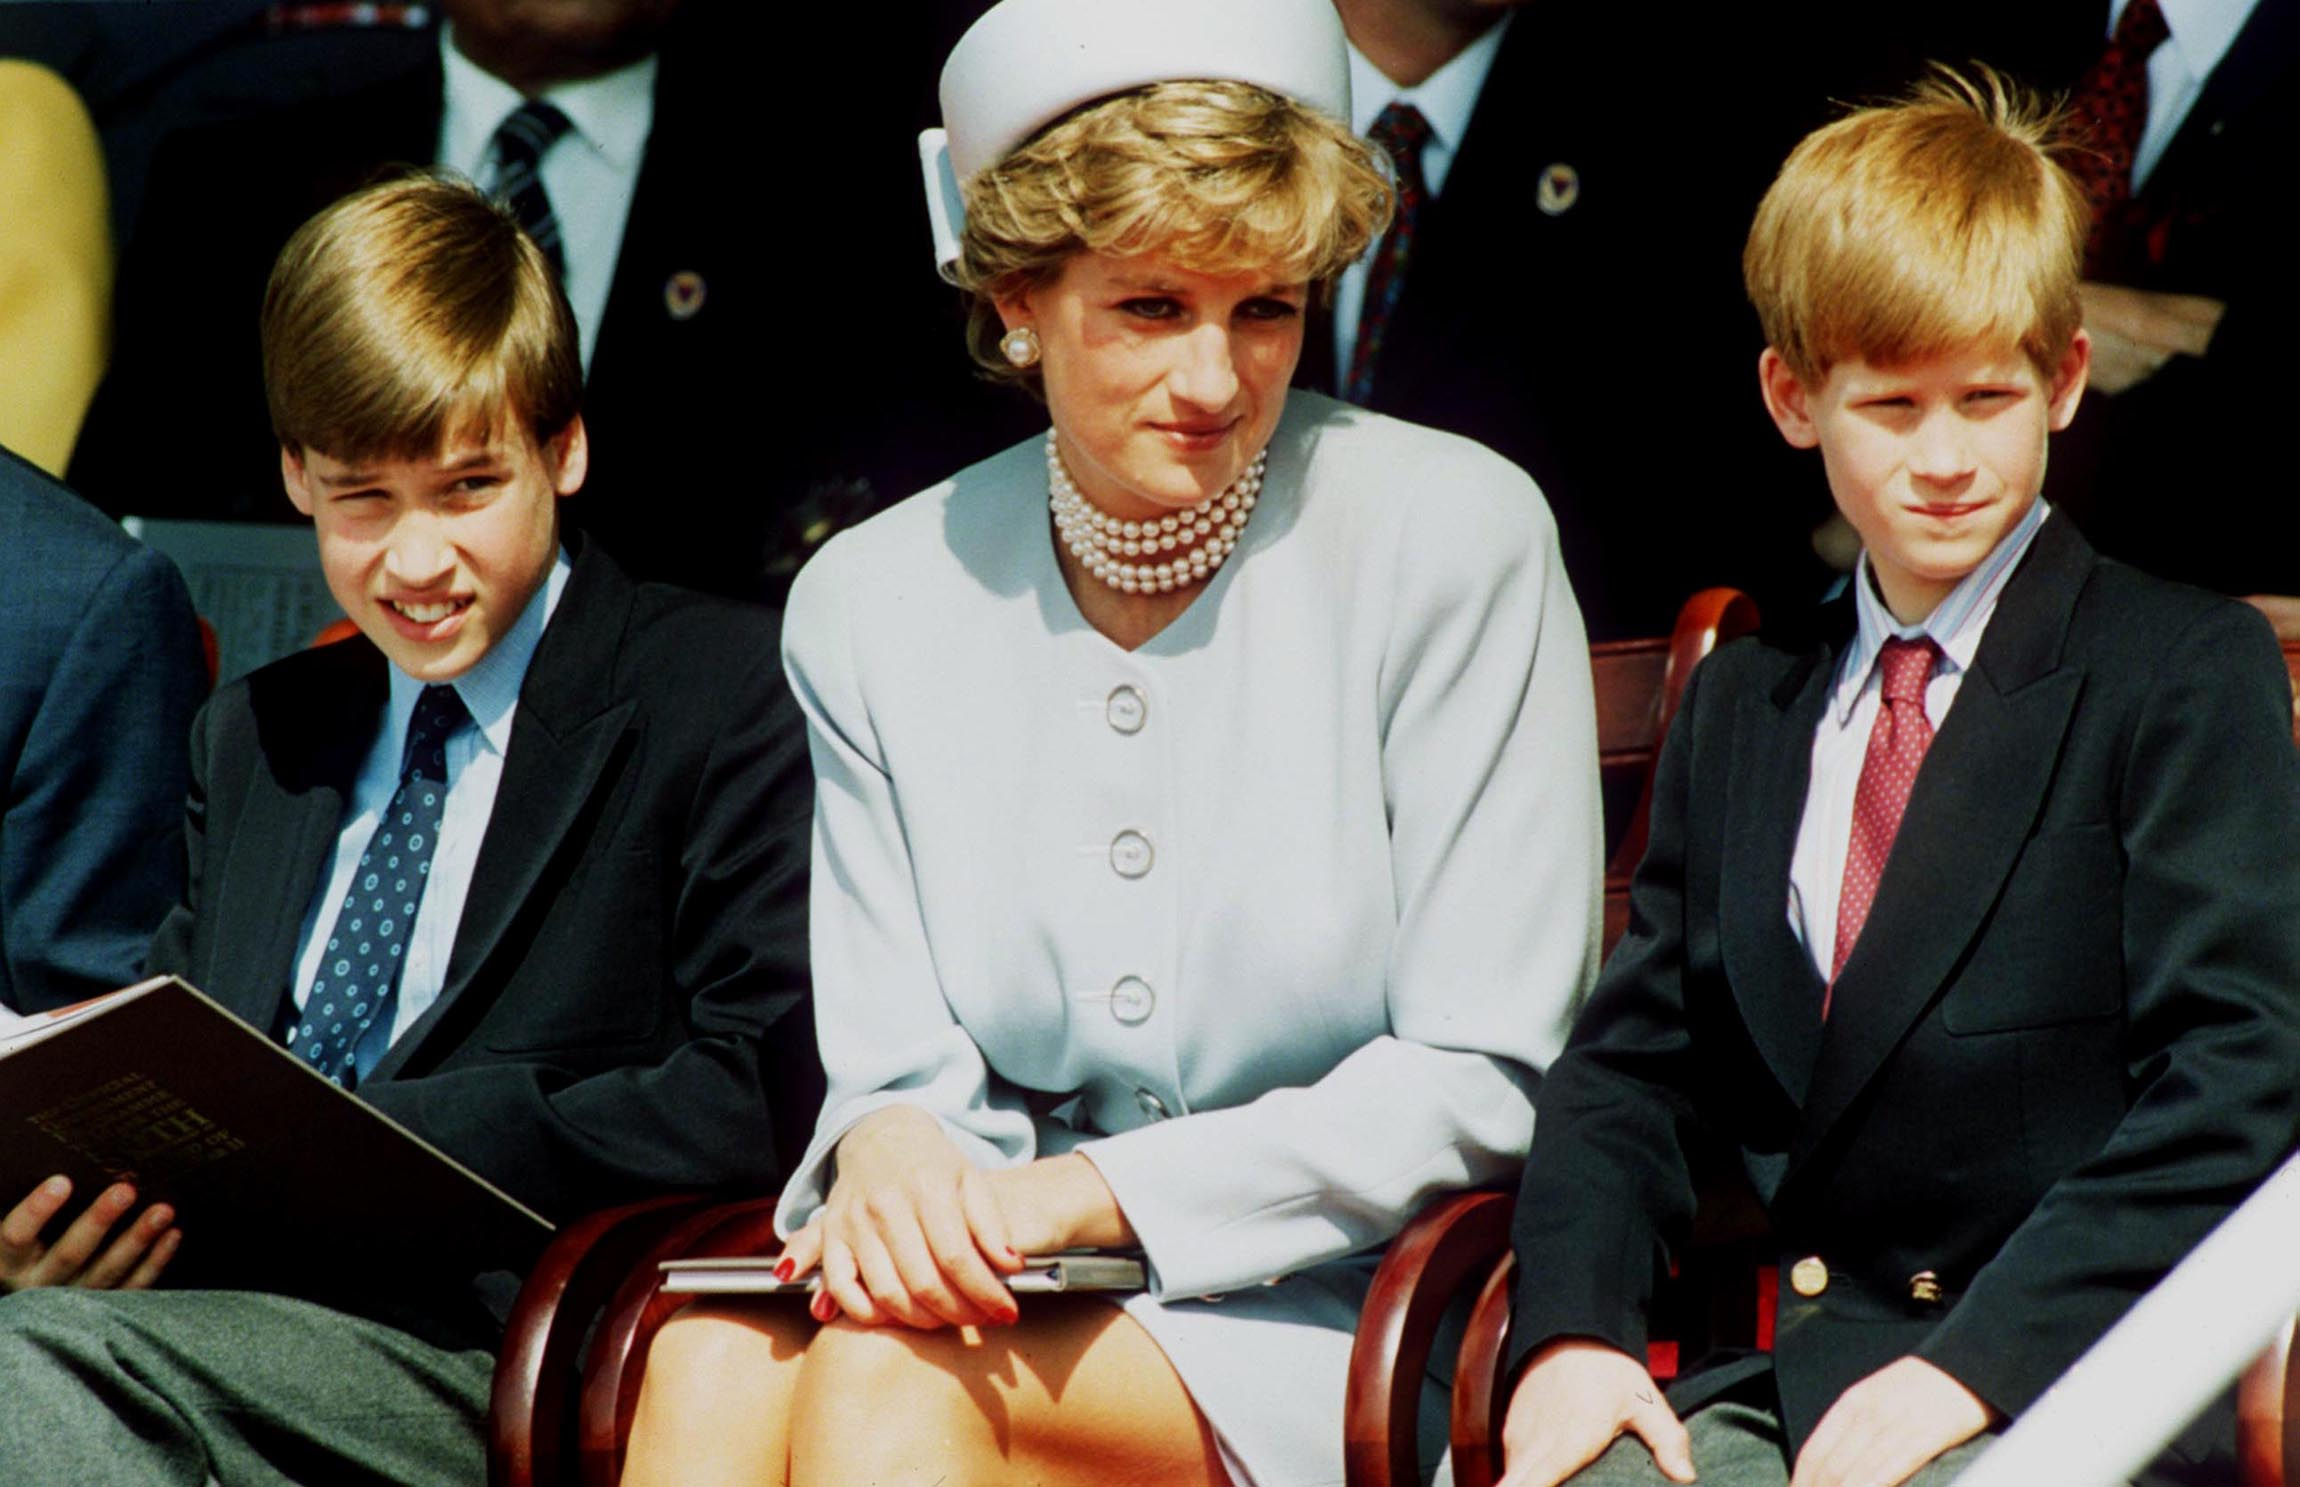 Princess Diana and her sons Prince William and Prince Harry | Photo: Getty Images